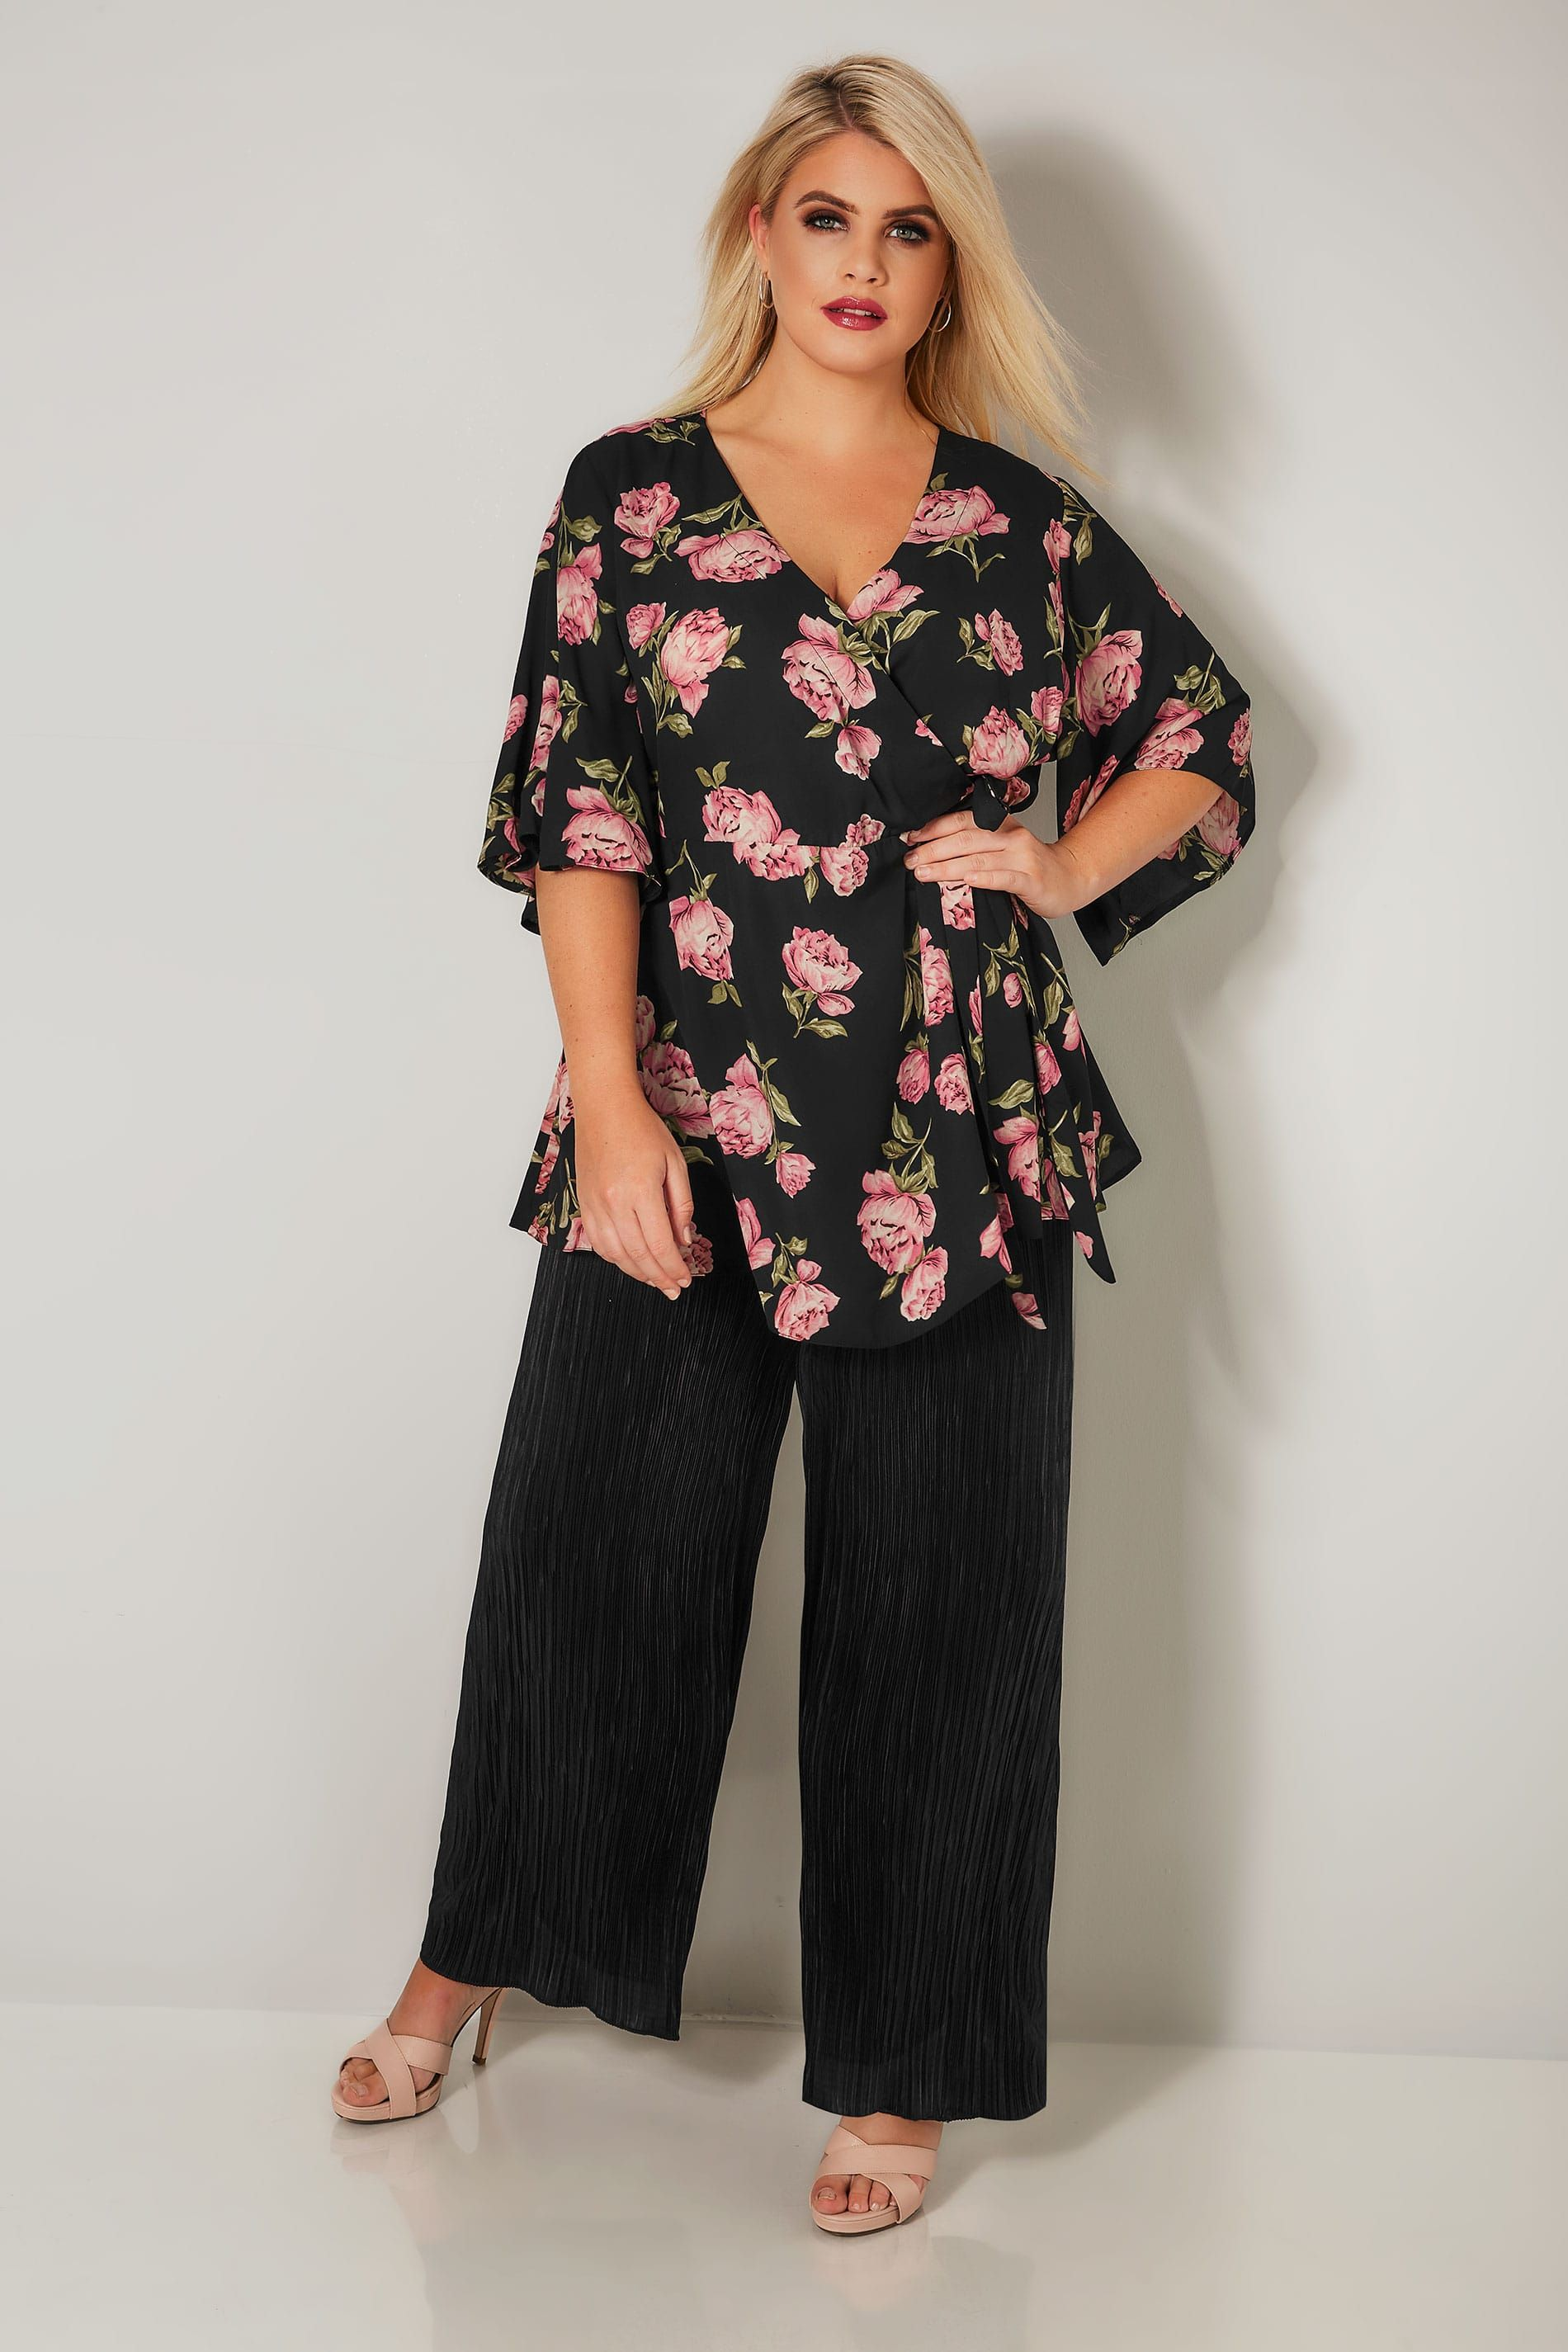 6baec4b4fb631 Give your look a fashion update with this pretty peony print blouse.  Featuring a flattering